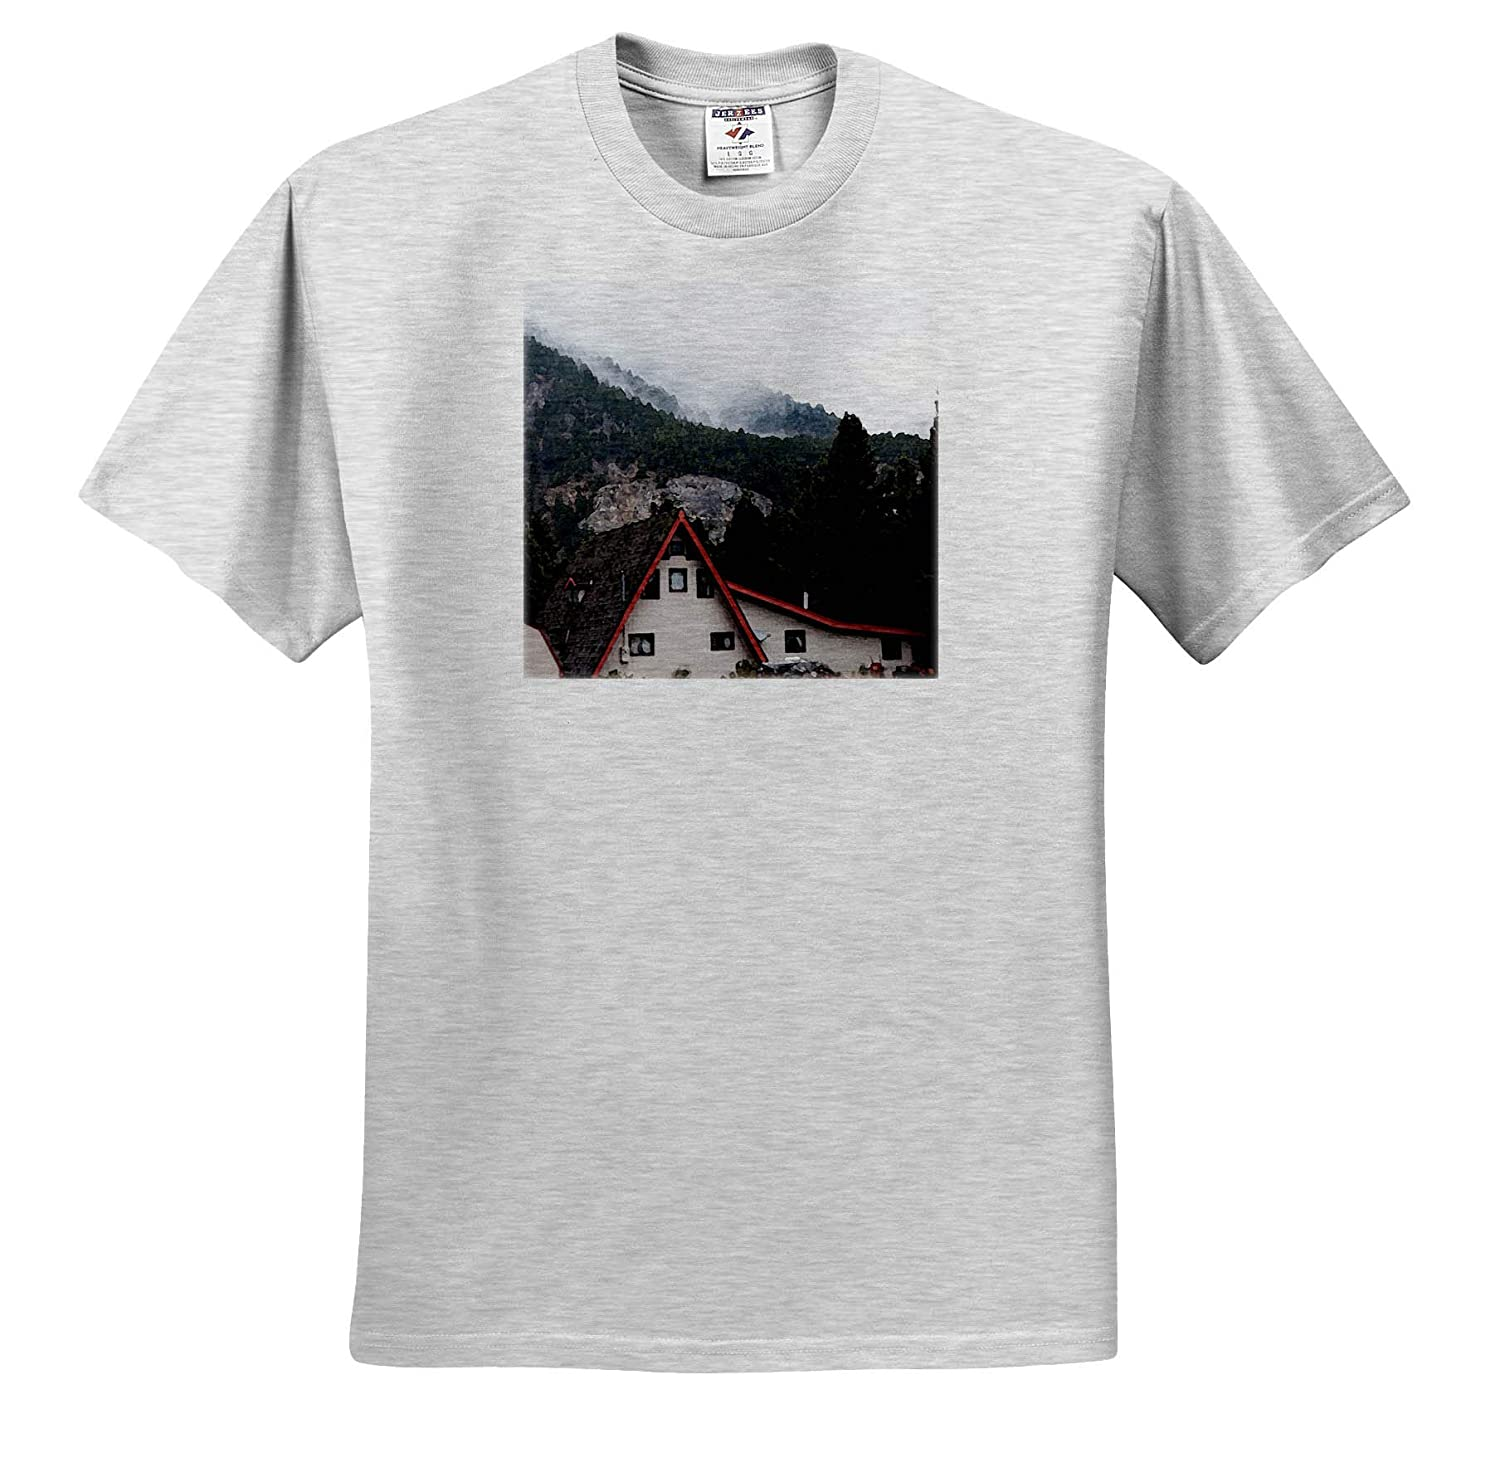 ts/_320071 3dRose Jos Fauxtographee- Cabin A Cabin Lined in red in Wyoming on a Misty Day by Mountains Adult T-Shirt XL